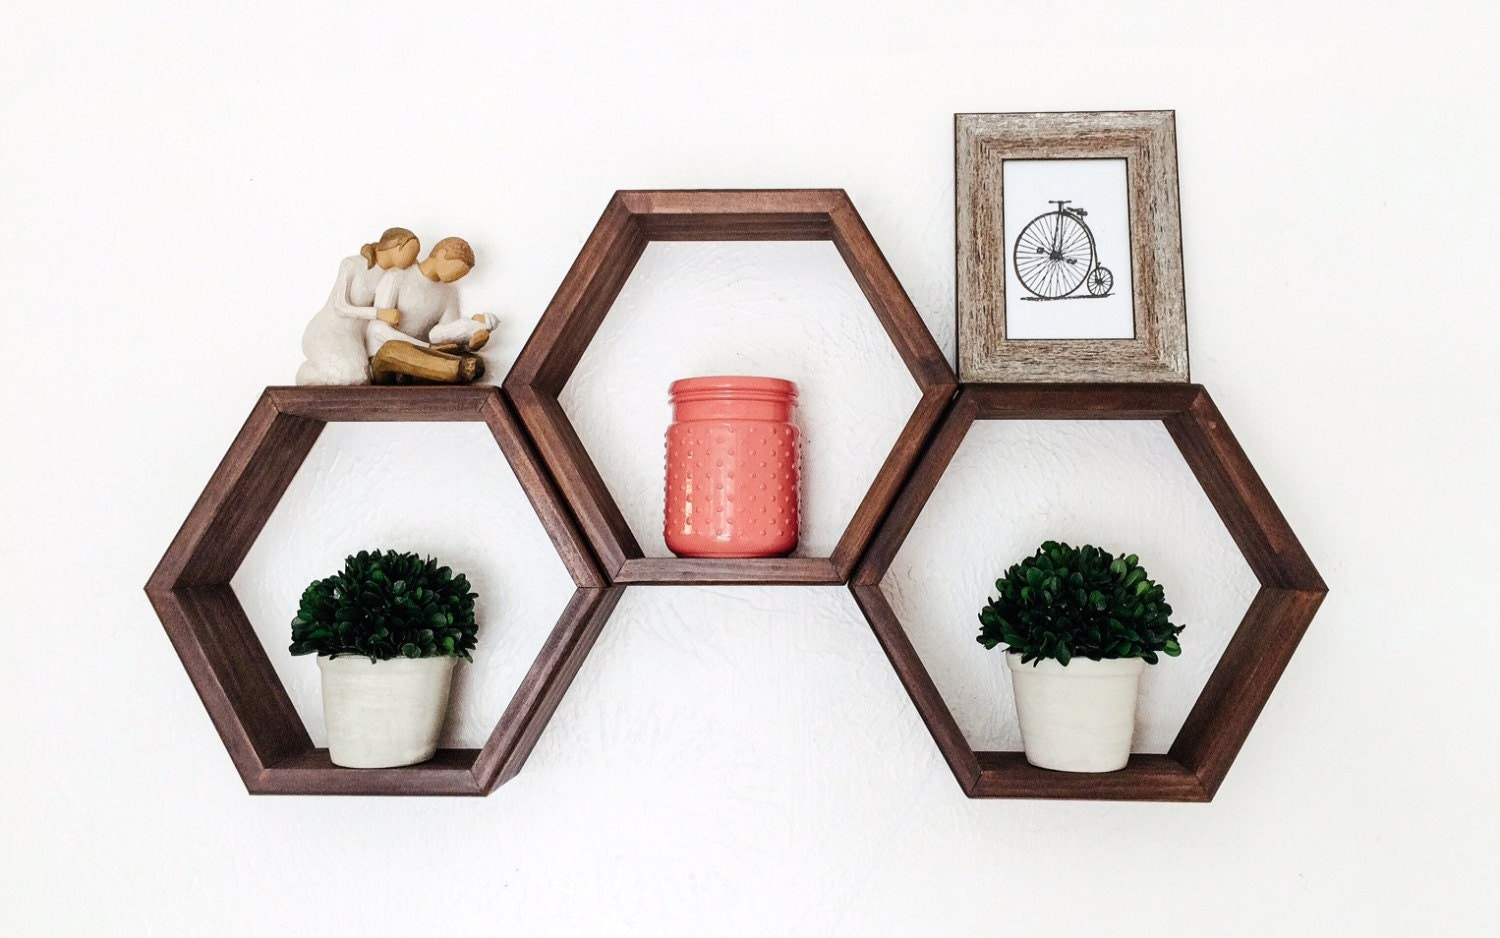 Honeycomb Shelves Geometric Shelf Set Of 3 Choice Of Stains